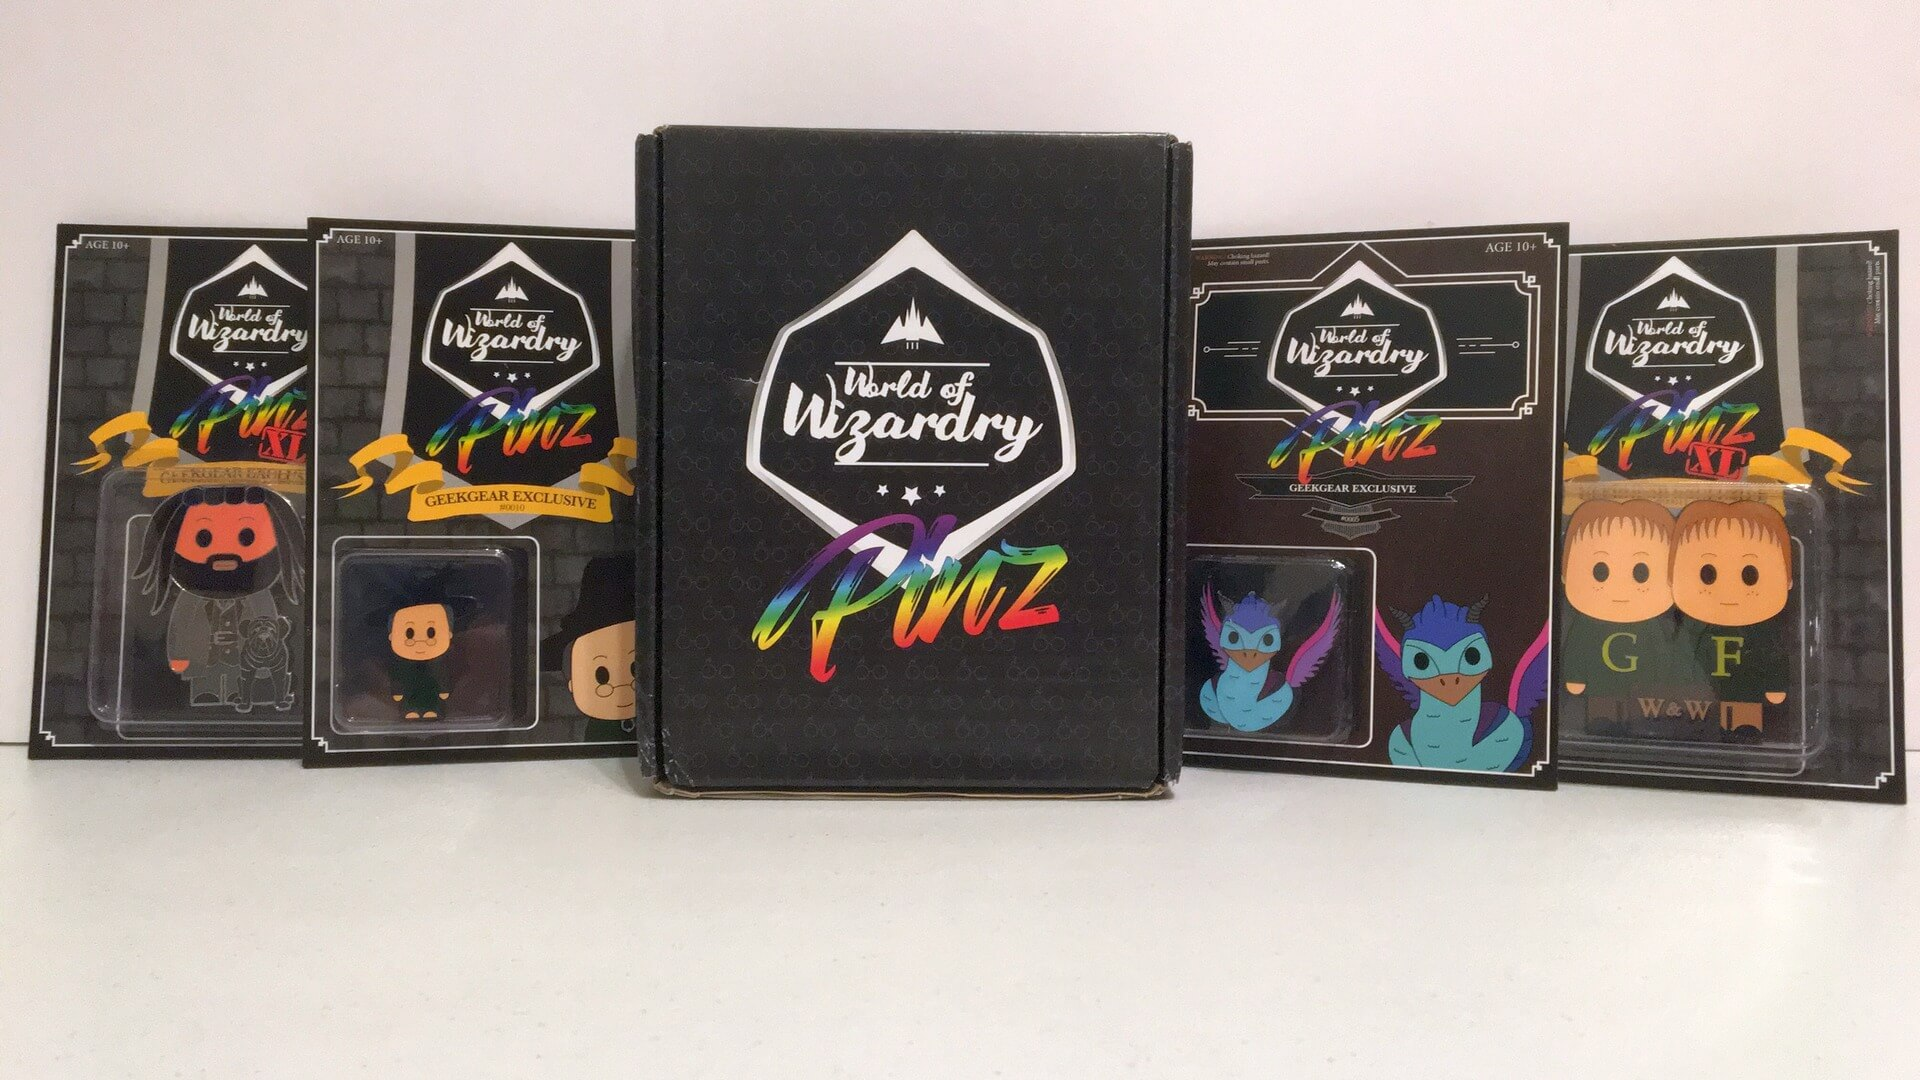 Geek Gear PINZ:  A World of Wizardry as a Collection of Pins - Review